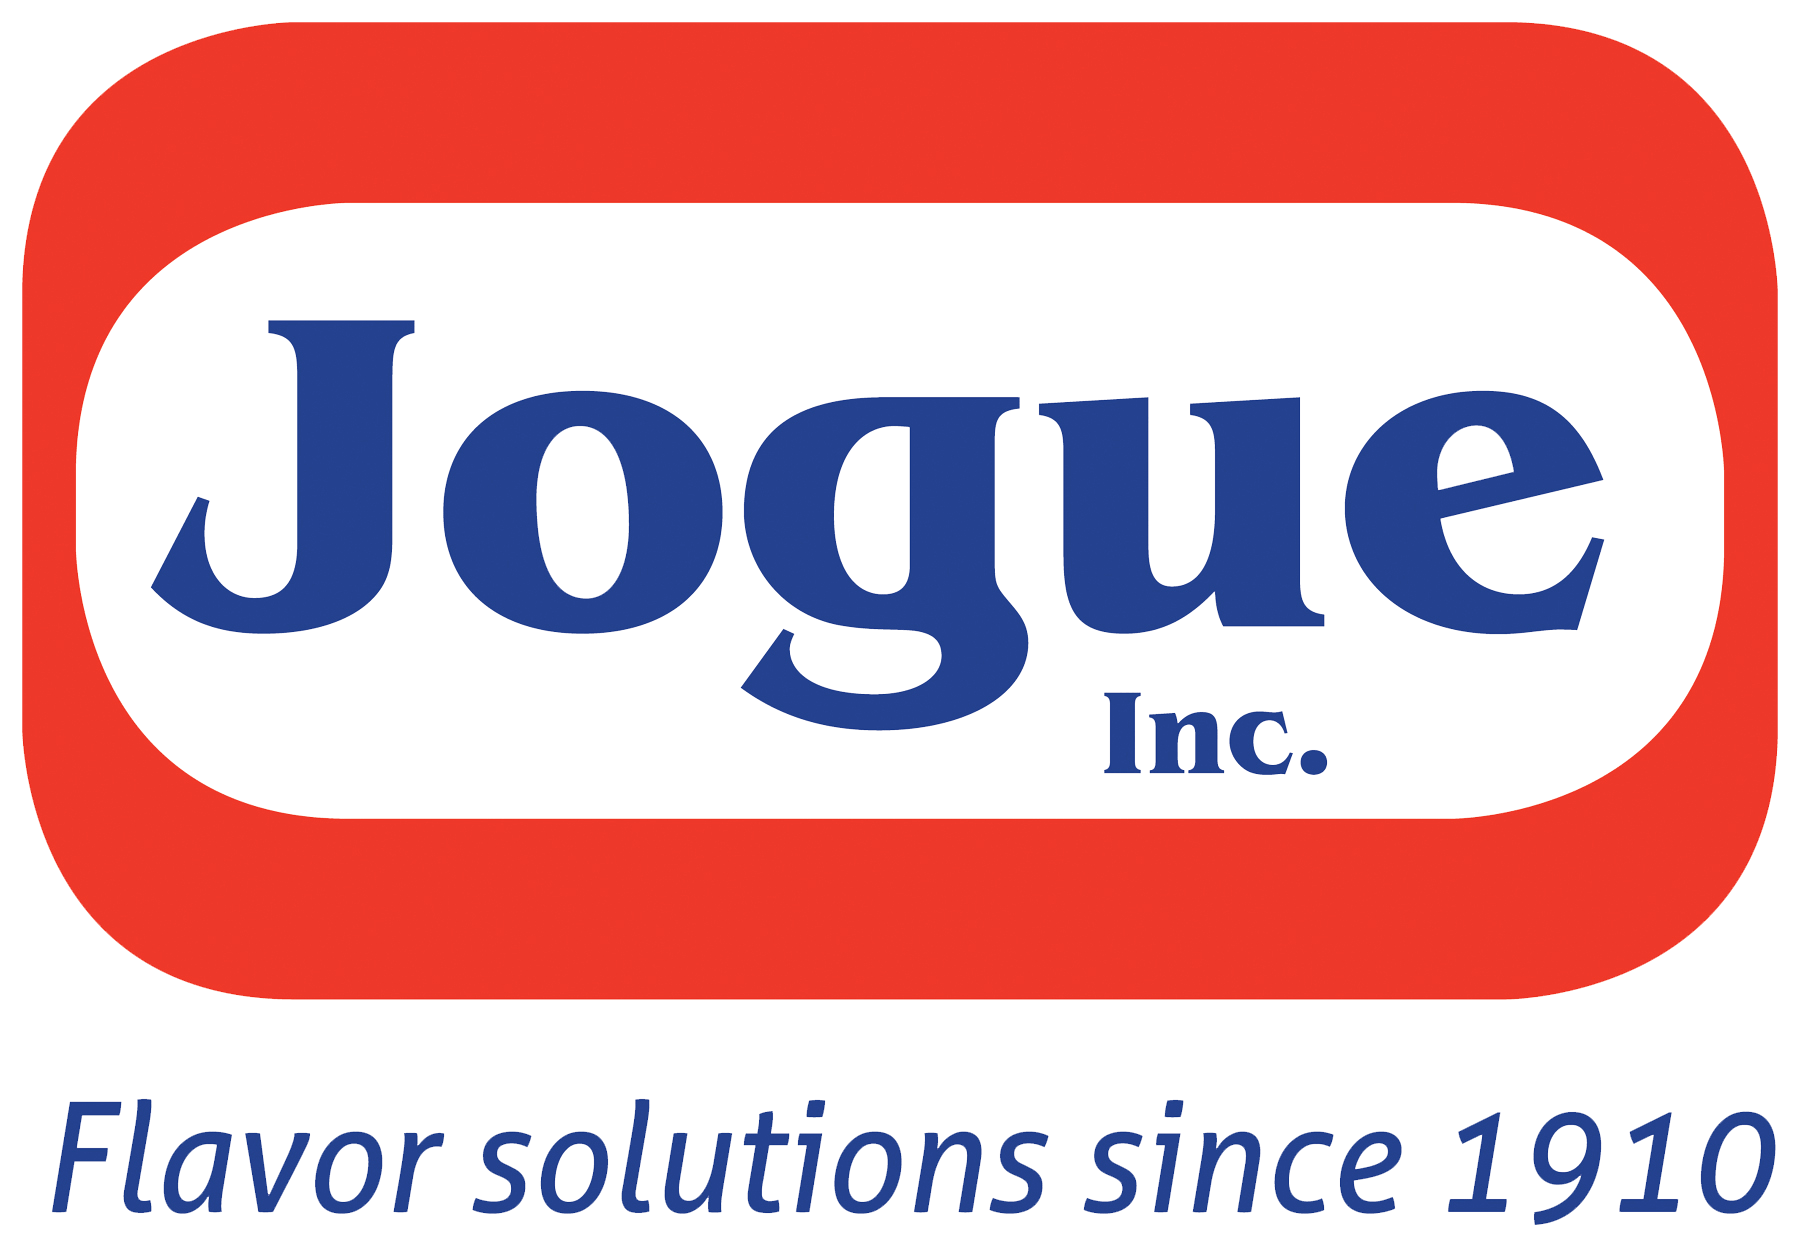 Full-color Jogue logo